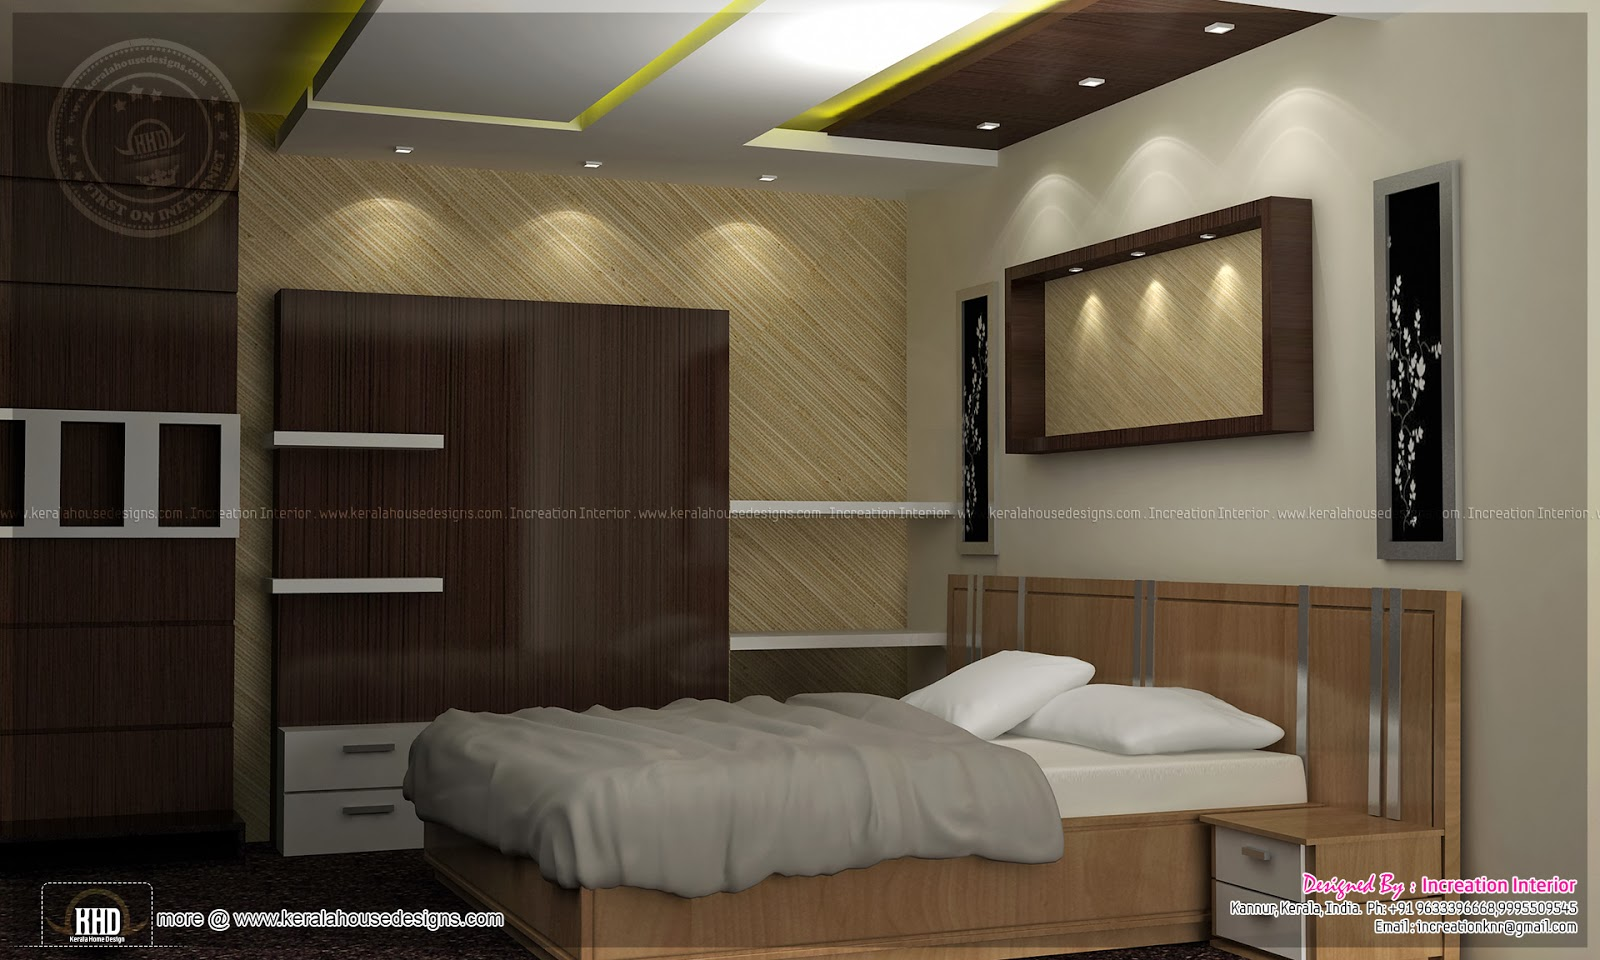 Bedroom interior designs indian house plans for Bedroom images interior designs